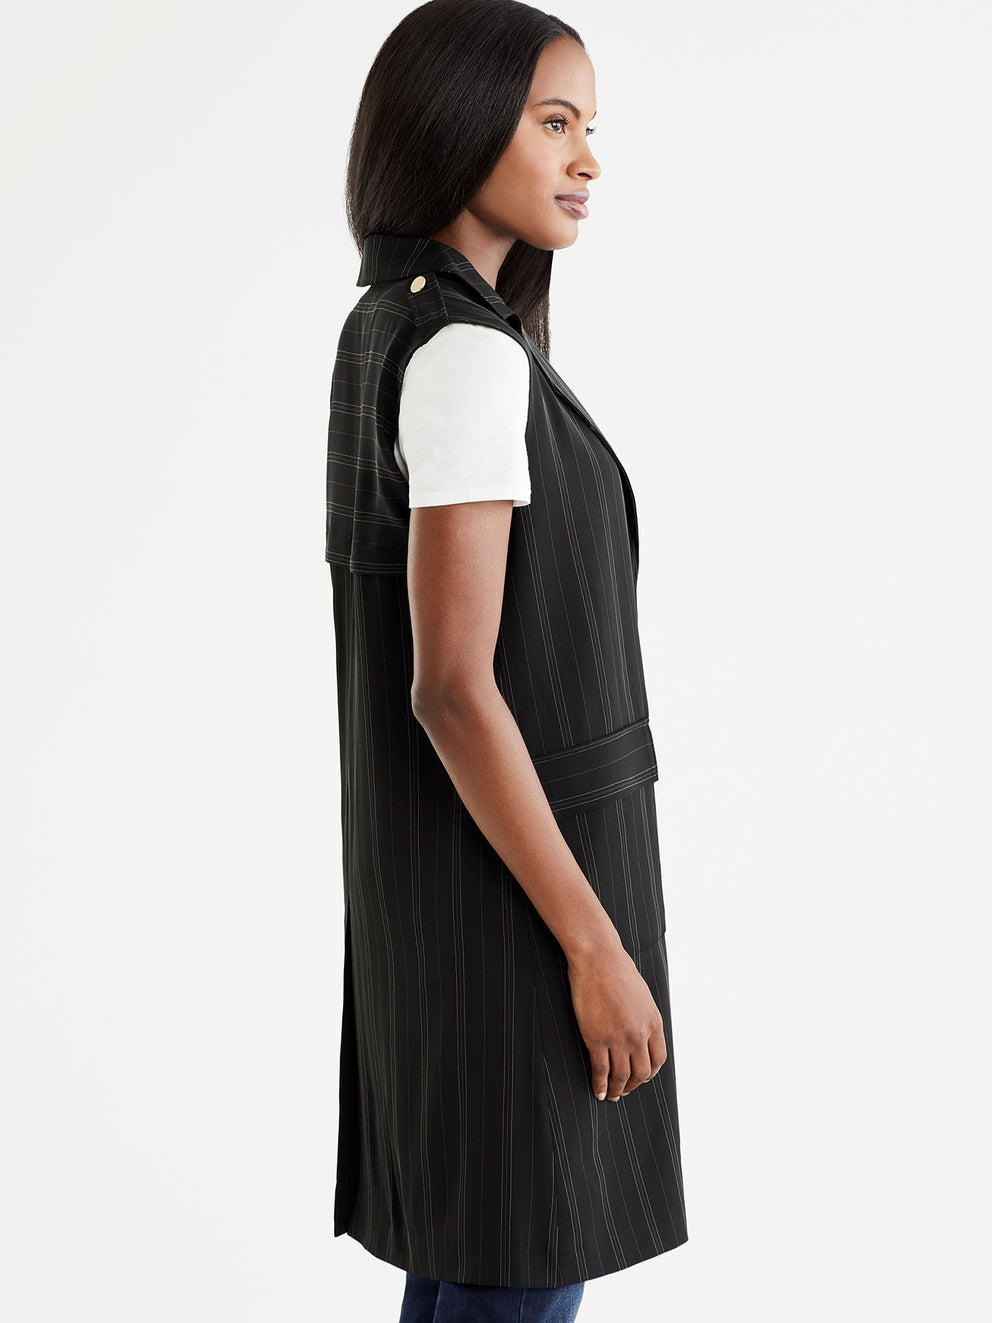 The Jones New York Pinstripe Long Vest in color Black Euro Stripe - Image Position 2